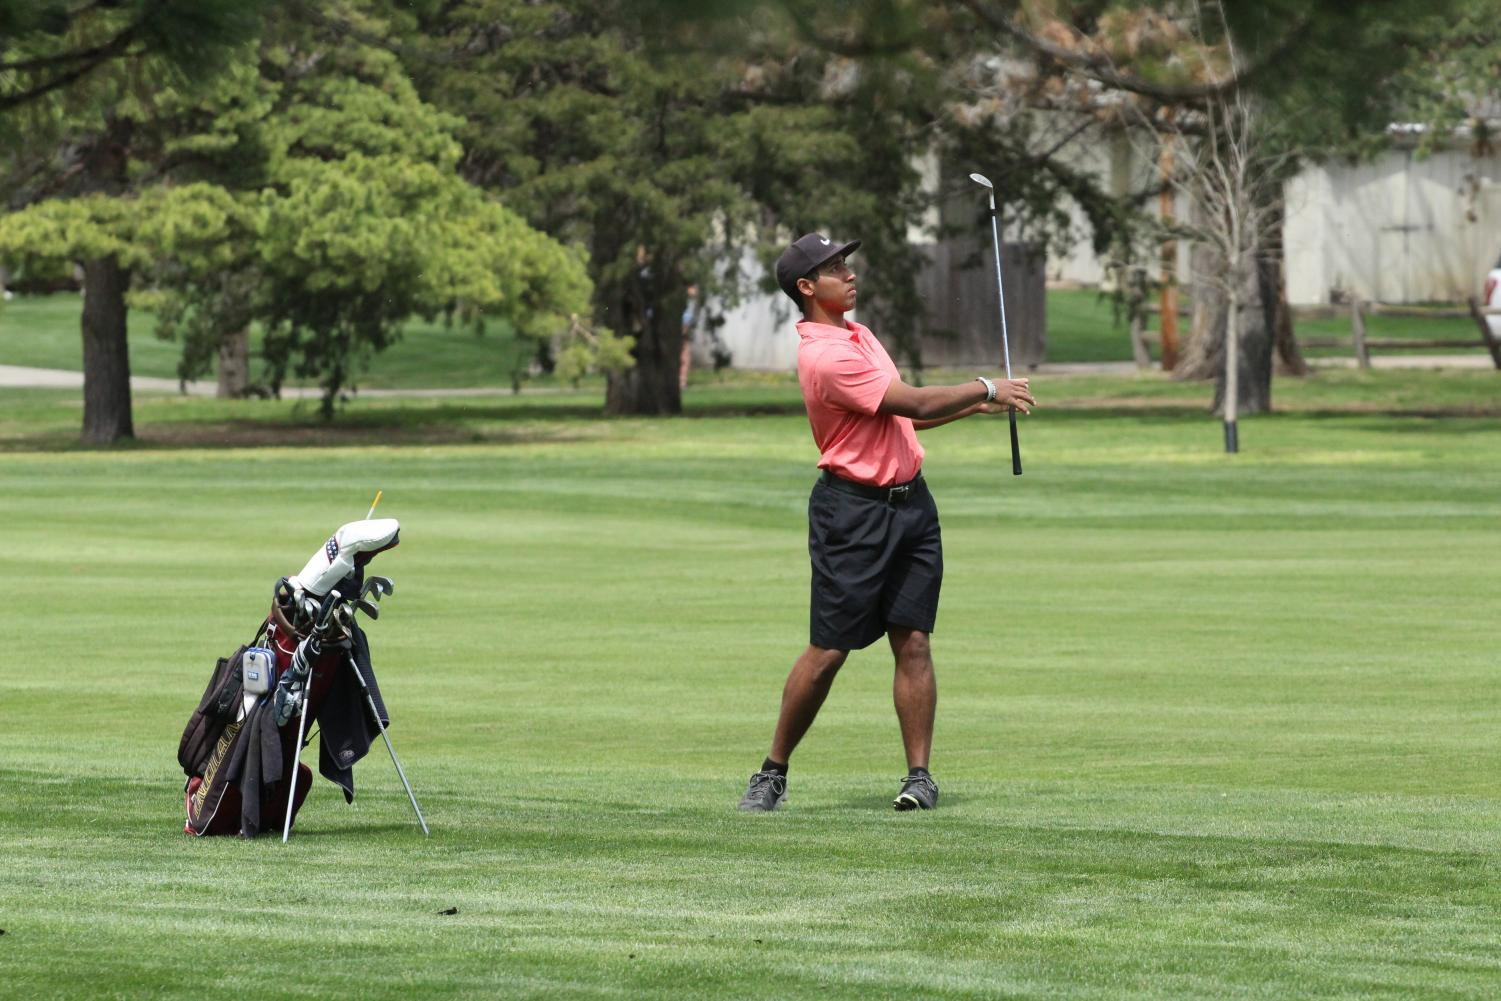 Senior Tradgon McCrae golfs at a previous home tournament. McCrae recently took third at the 5A State Golf Tournament in Dodge City on May 22.